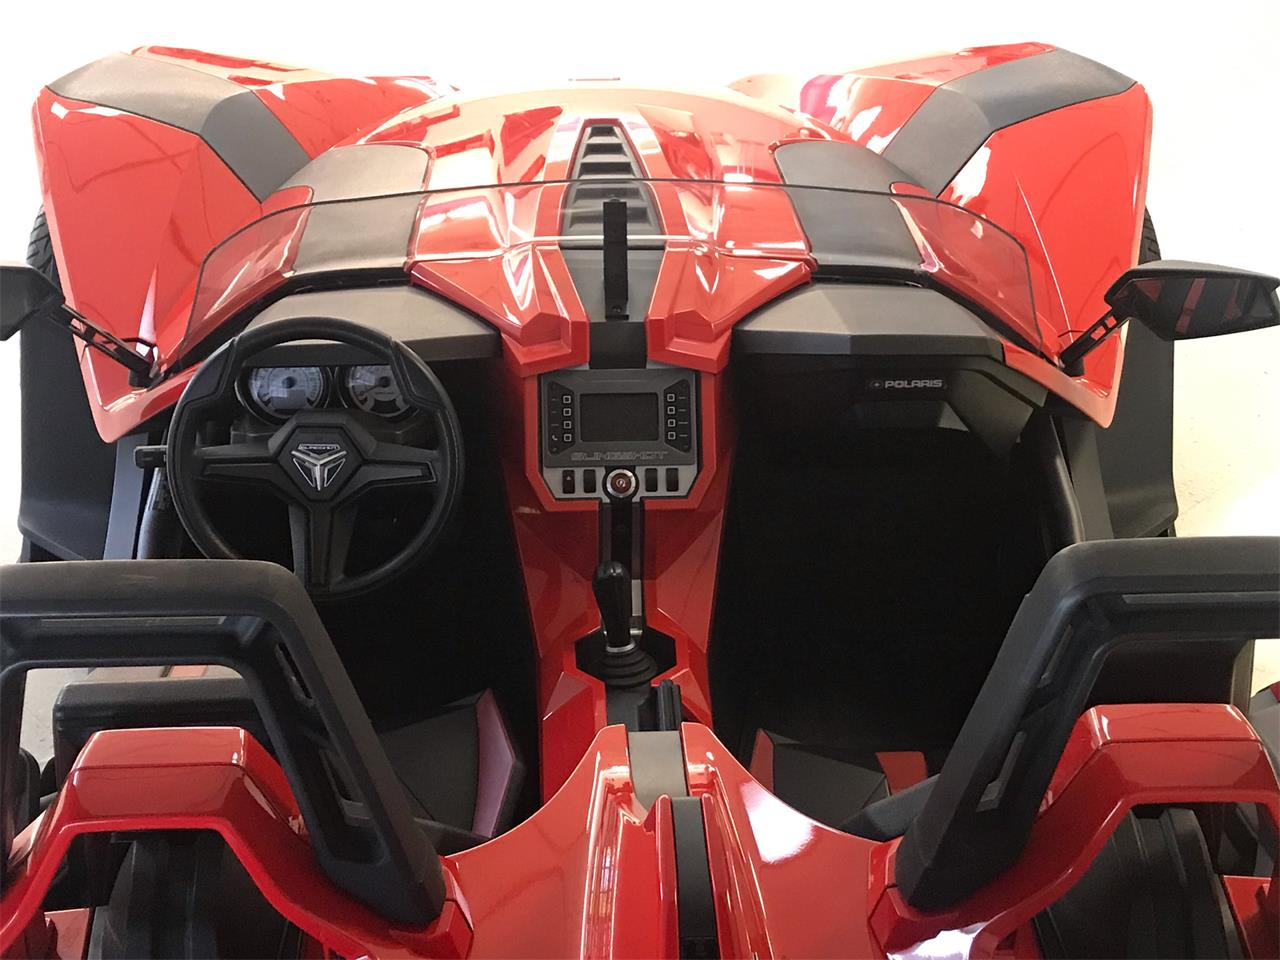 Large Picture of 2016 Polaris Slingshot located in Kentucky - $17,999.00 Offered by Central Kentucky Classic Cars LLC  - PYGT